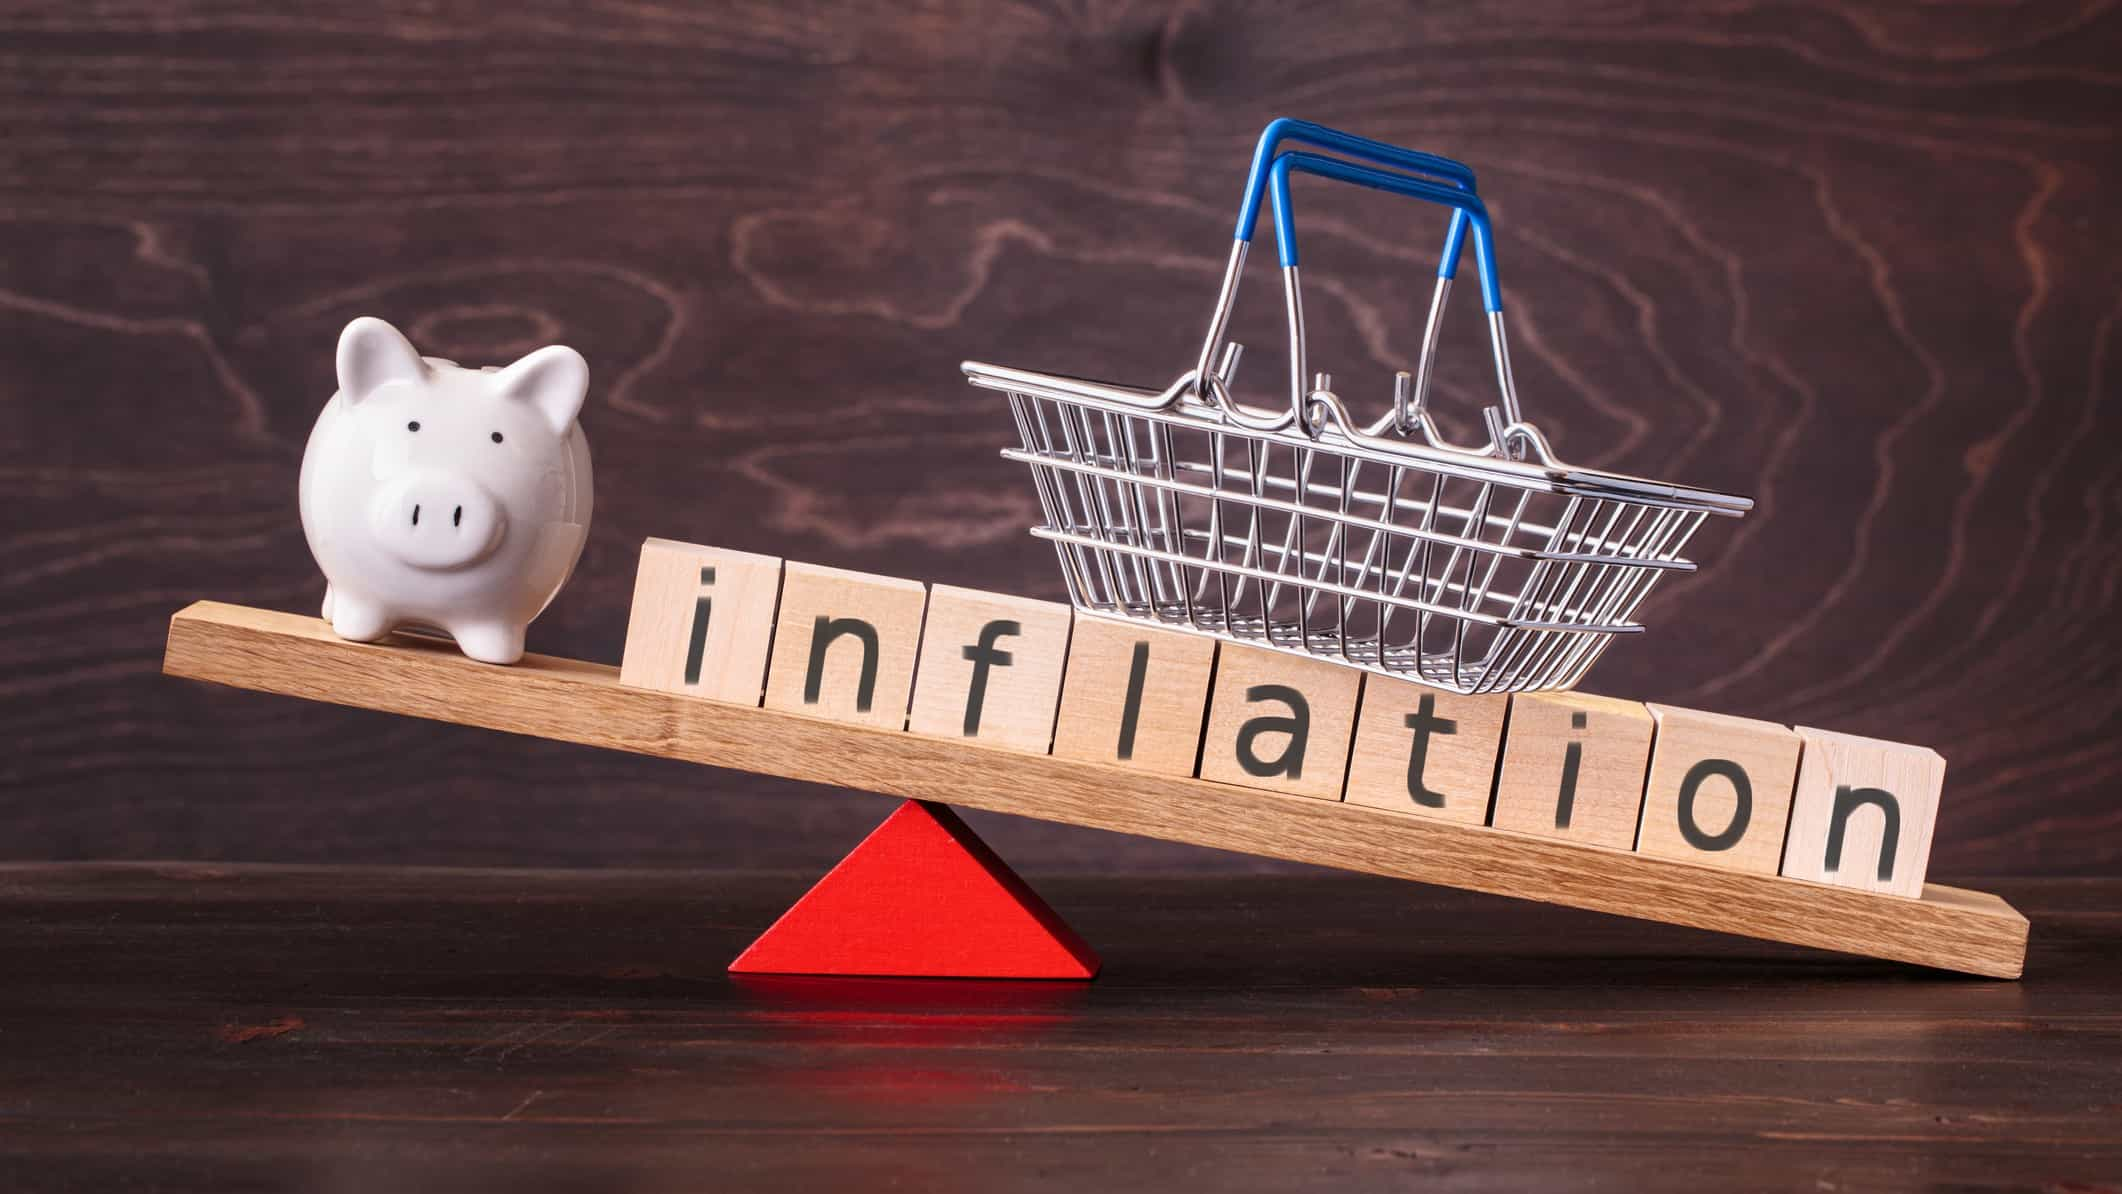 inflation written on wooden cubes being balanced with a piggy bank and small shopping basket